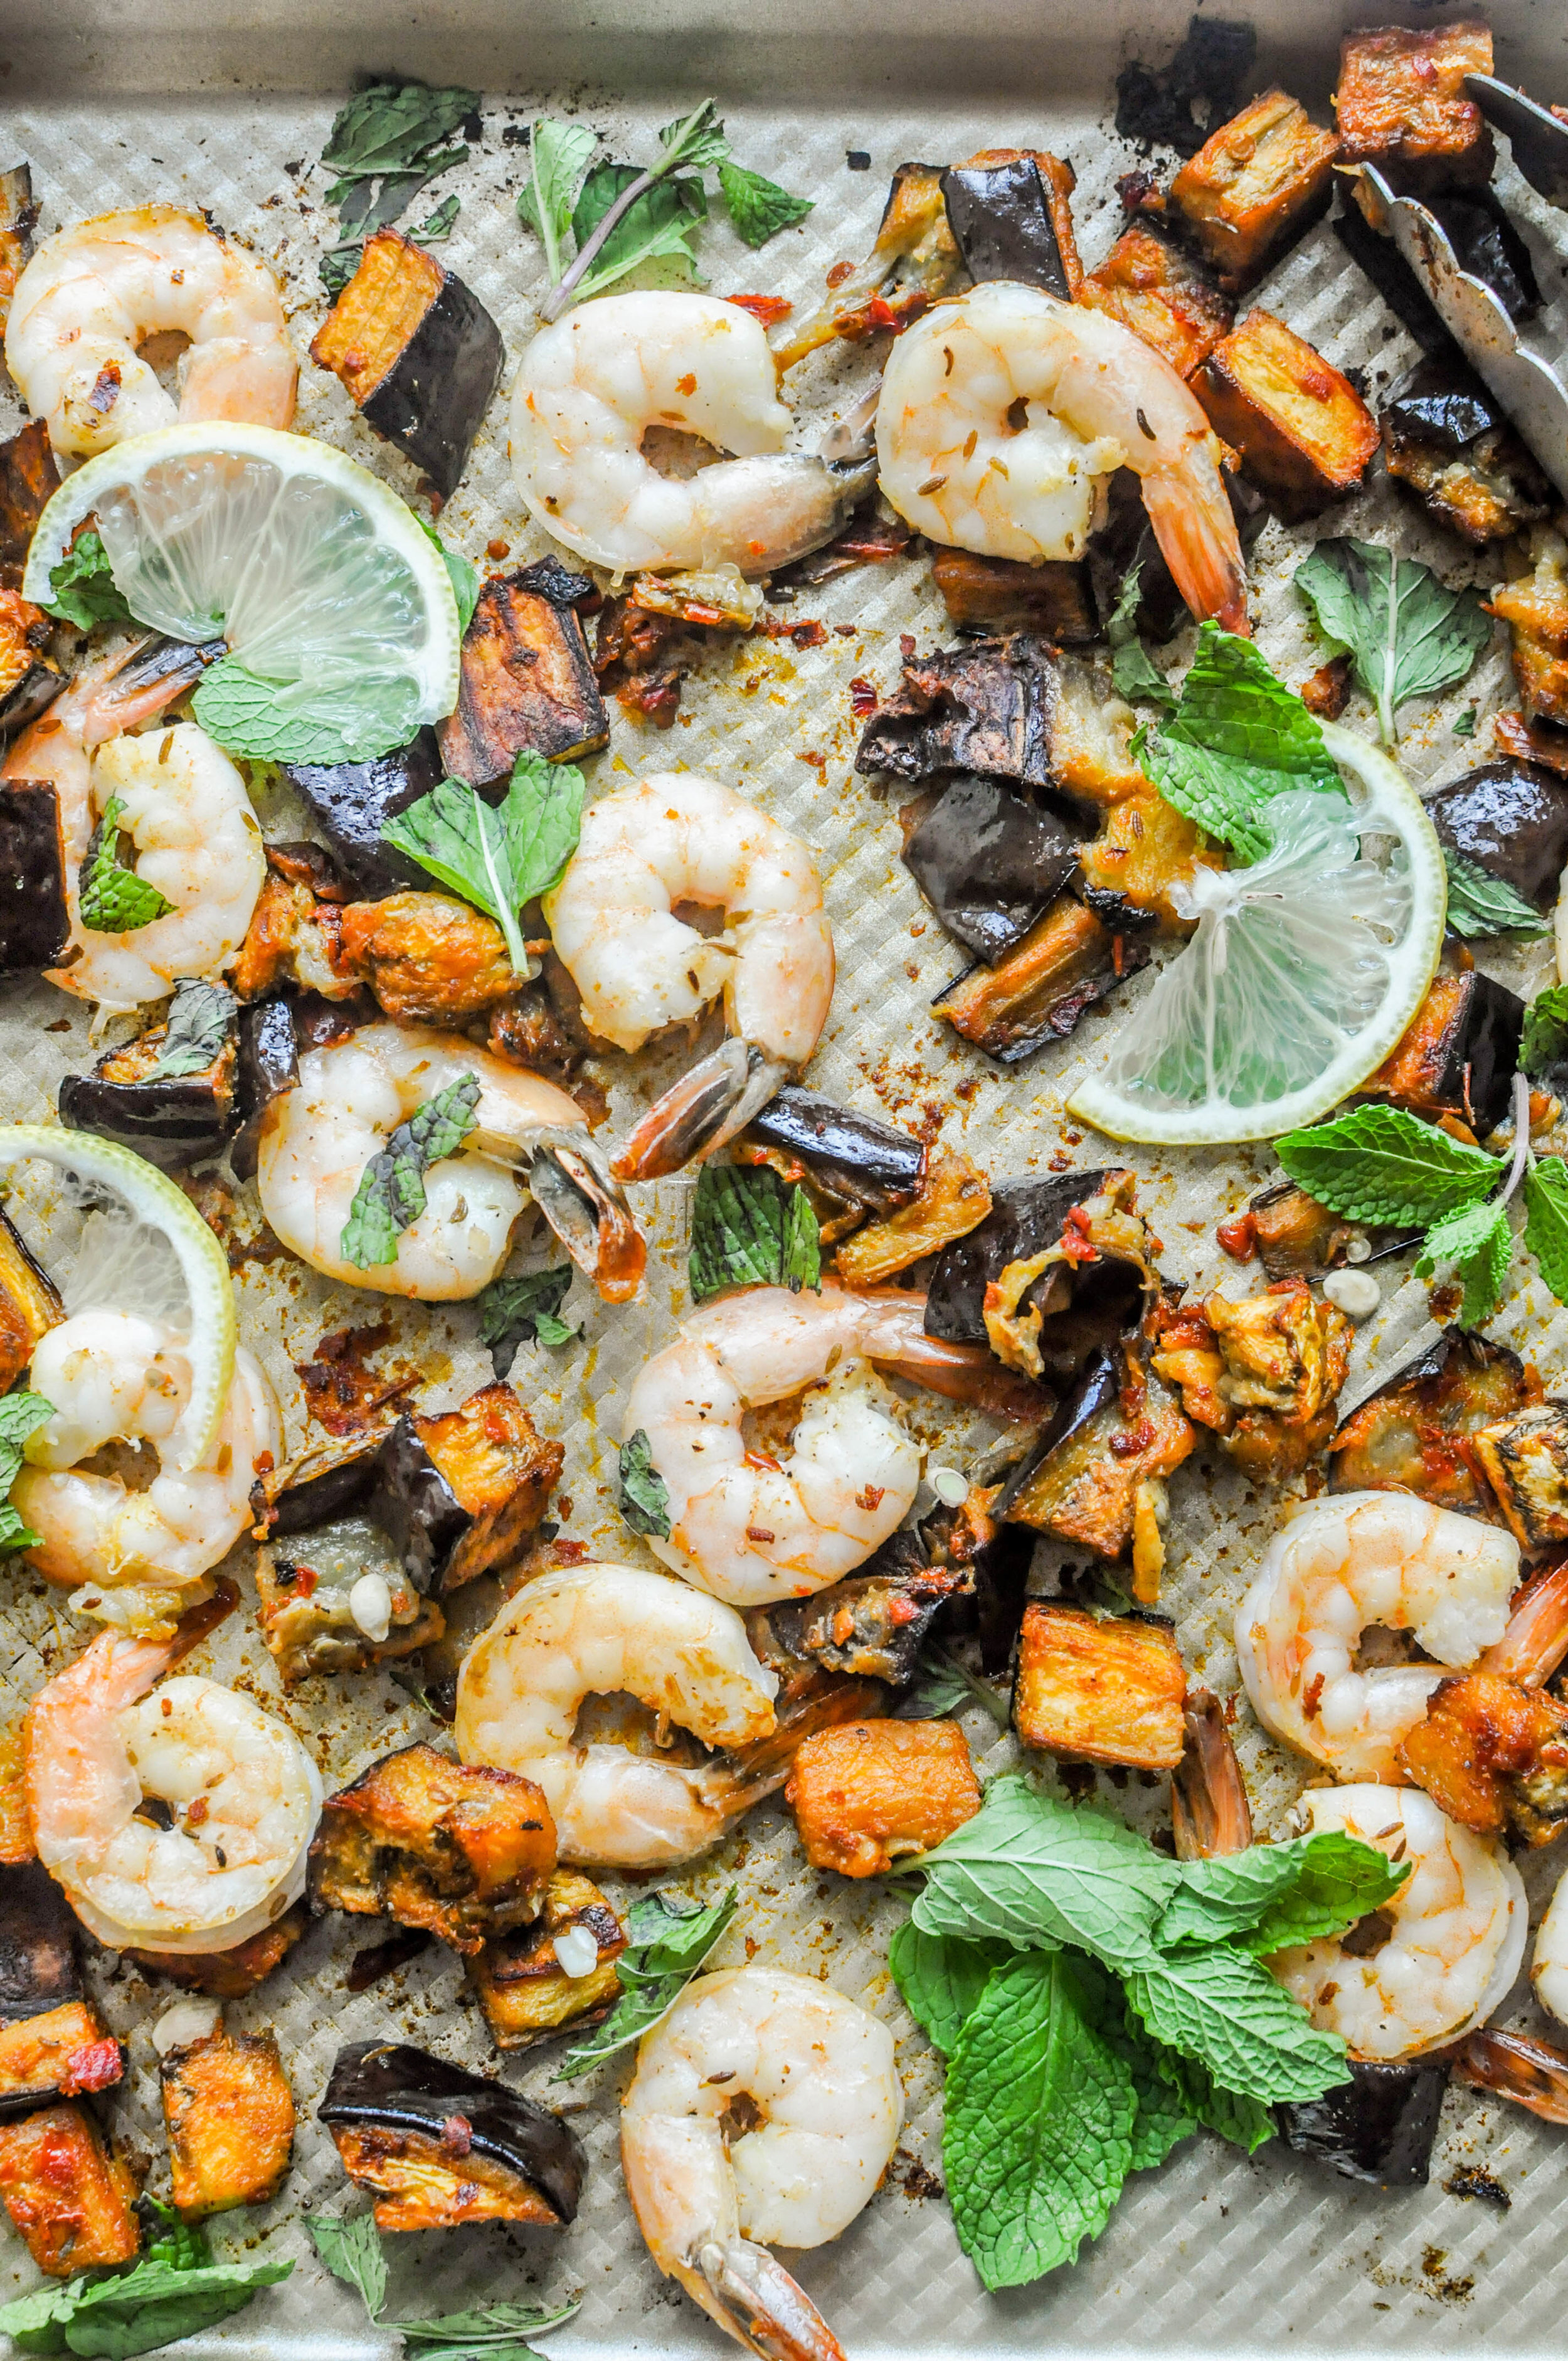 This roasted eggplant and shrimp with harissa tray bake recipe is flavorful and ready in only 40 minutes (much of which is hands-off time). The eggplant becomes so soft and succulent - it almost melts in your mouth.